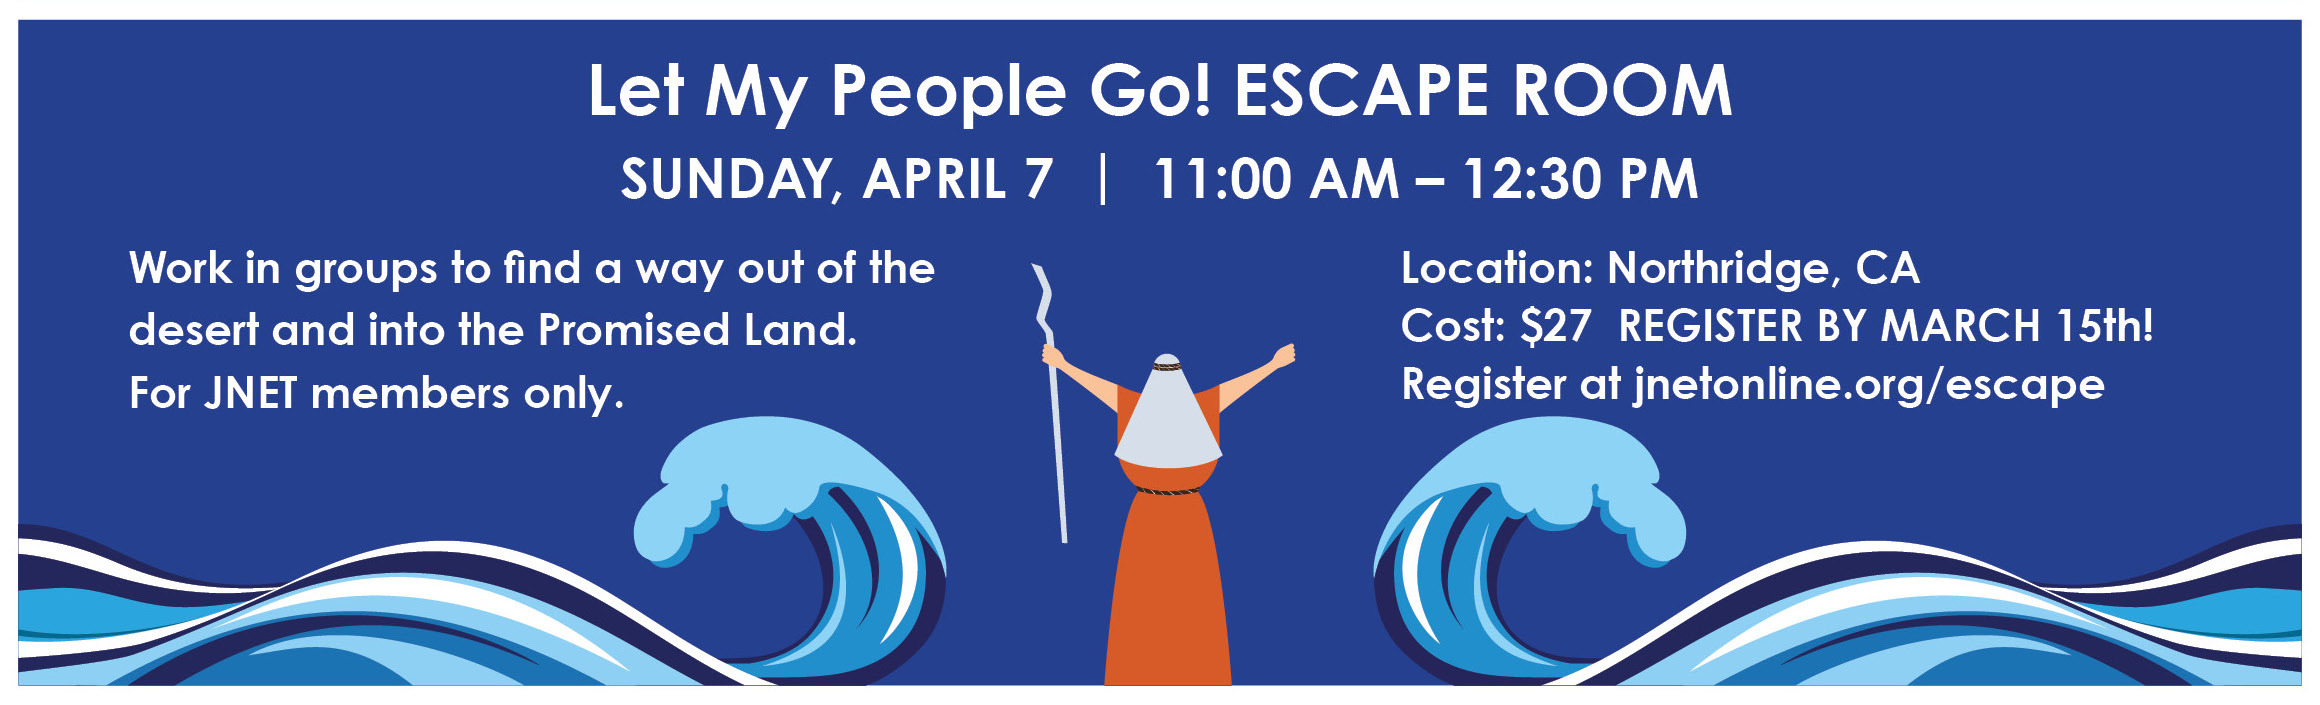 JNET Let My People Go Escape Room event promo